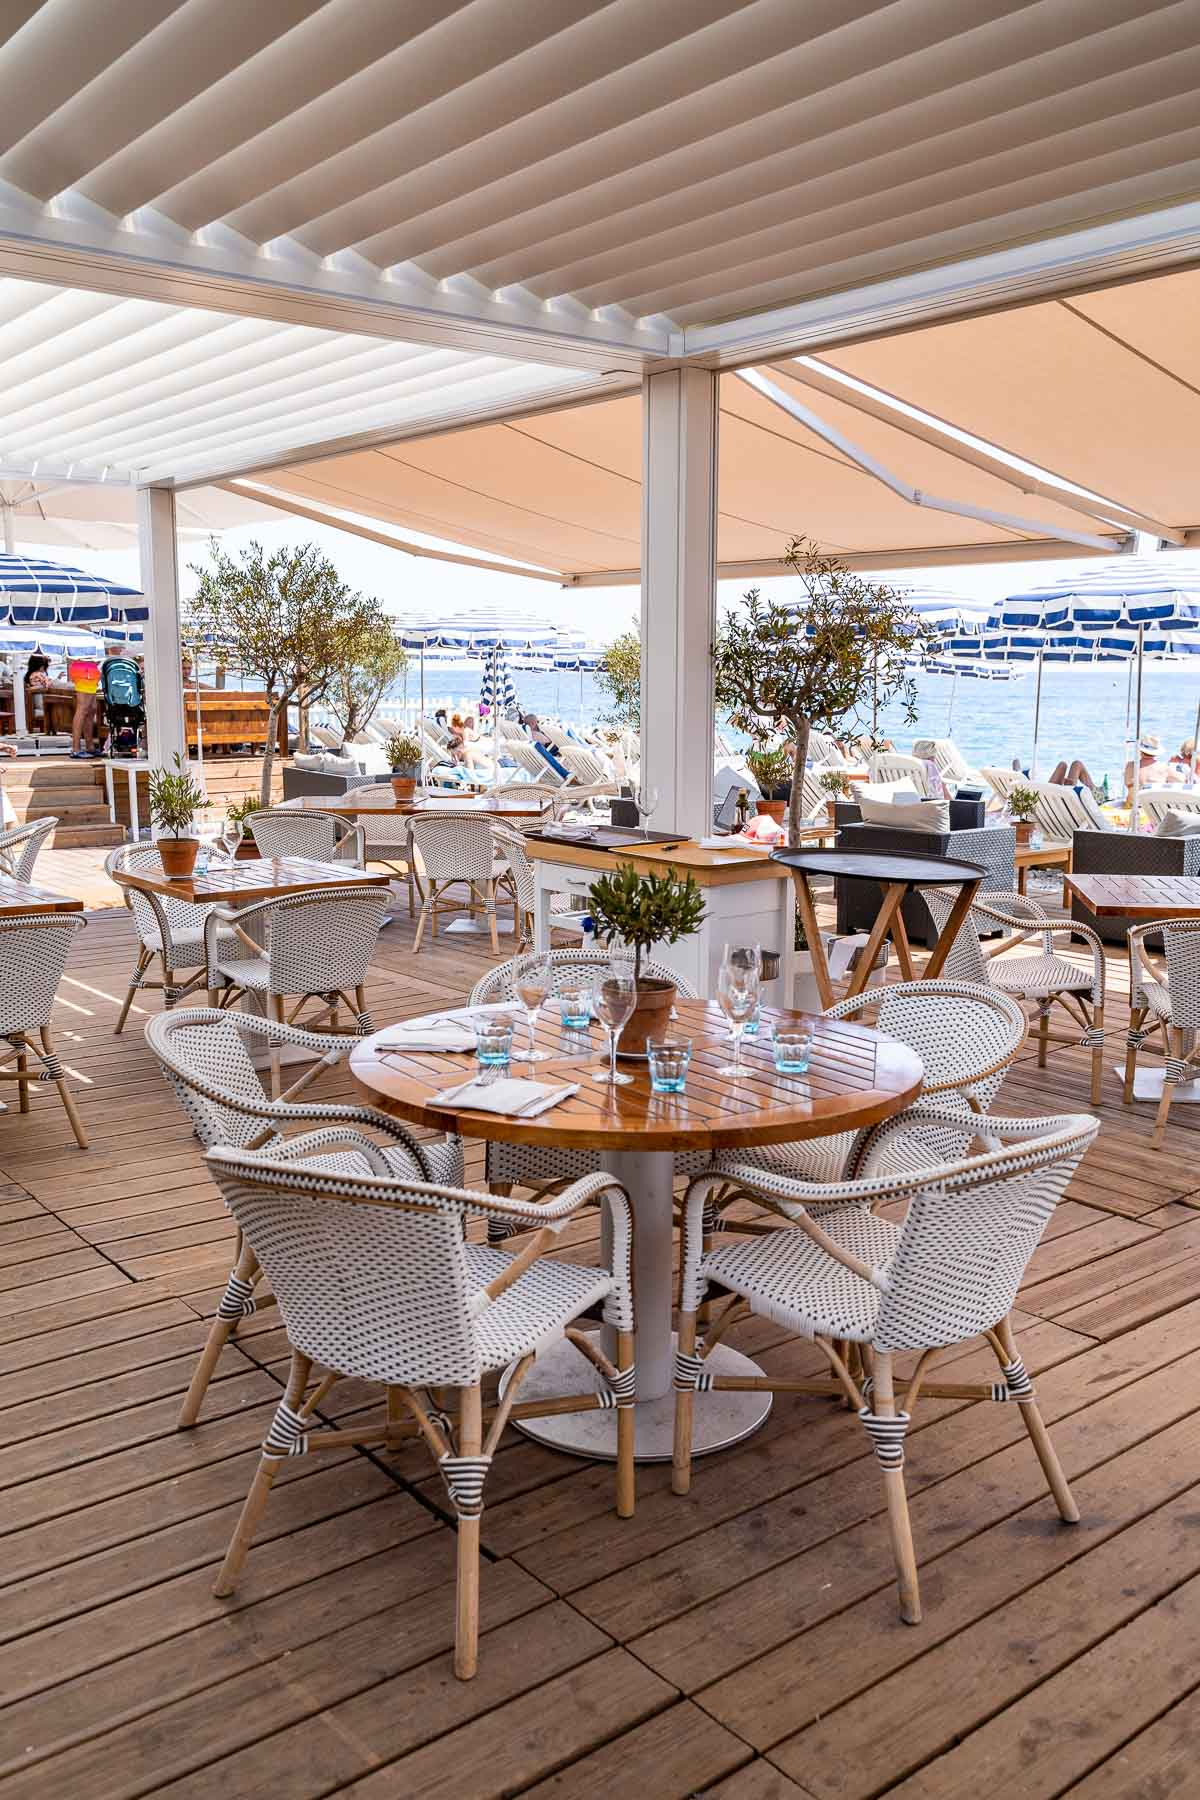 Cute tables at Ruhl Plage in Nice, France